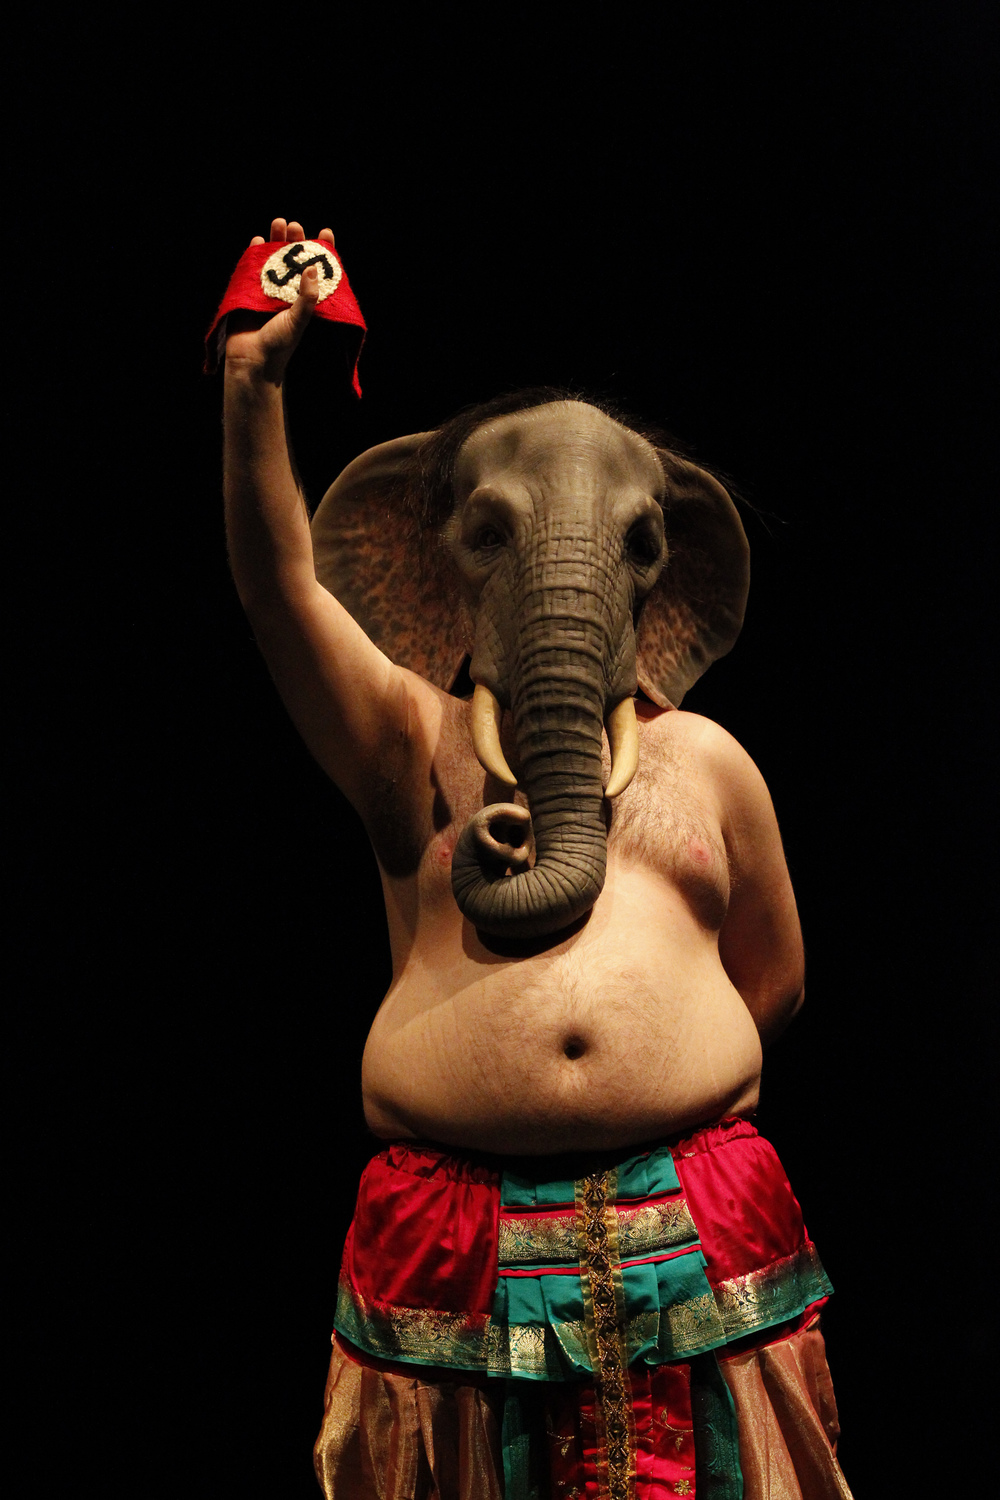 Last seen at UTR 08 with  small metal objects , Back to Back returns to UTR with a beautiful and disarming production, full of vulnerability. The story begins with the elephant-headed god Ganesh's travels through Nazi Germany to reclaim the Swastika, an ancient Hindu symbol. As the hero embarks on his journey a second narrative is revealed: the actors themselves begin to feel the responsibility of storytellers and question the ethics of cultural appropriation. One of Australia's most respected theatre companies, Back to Back Theatre has developed a global reputation for its unique ability to present the issues of our times with a distinct outsider focus.   Photo Credit: Jeff Busby